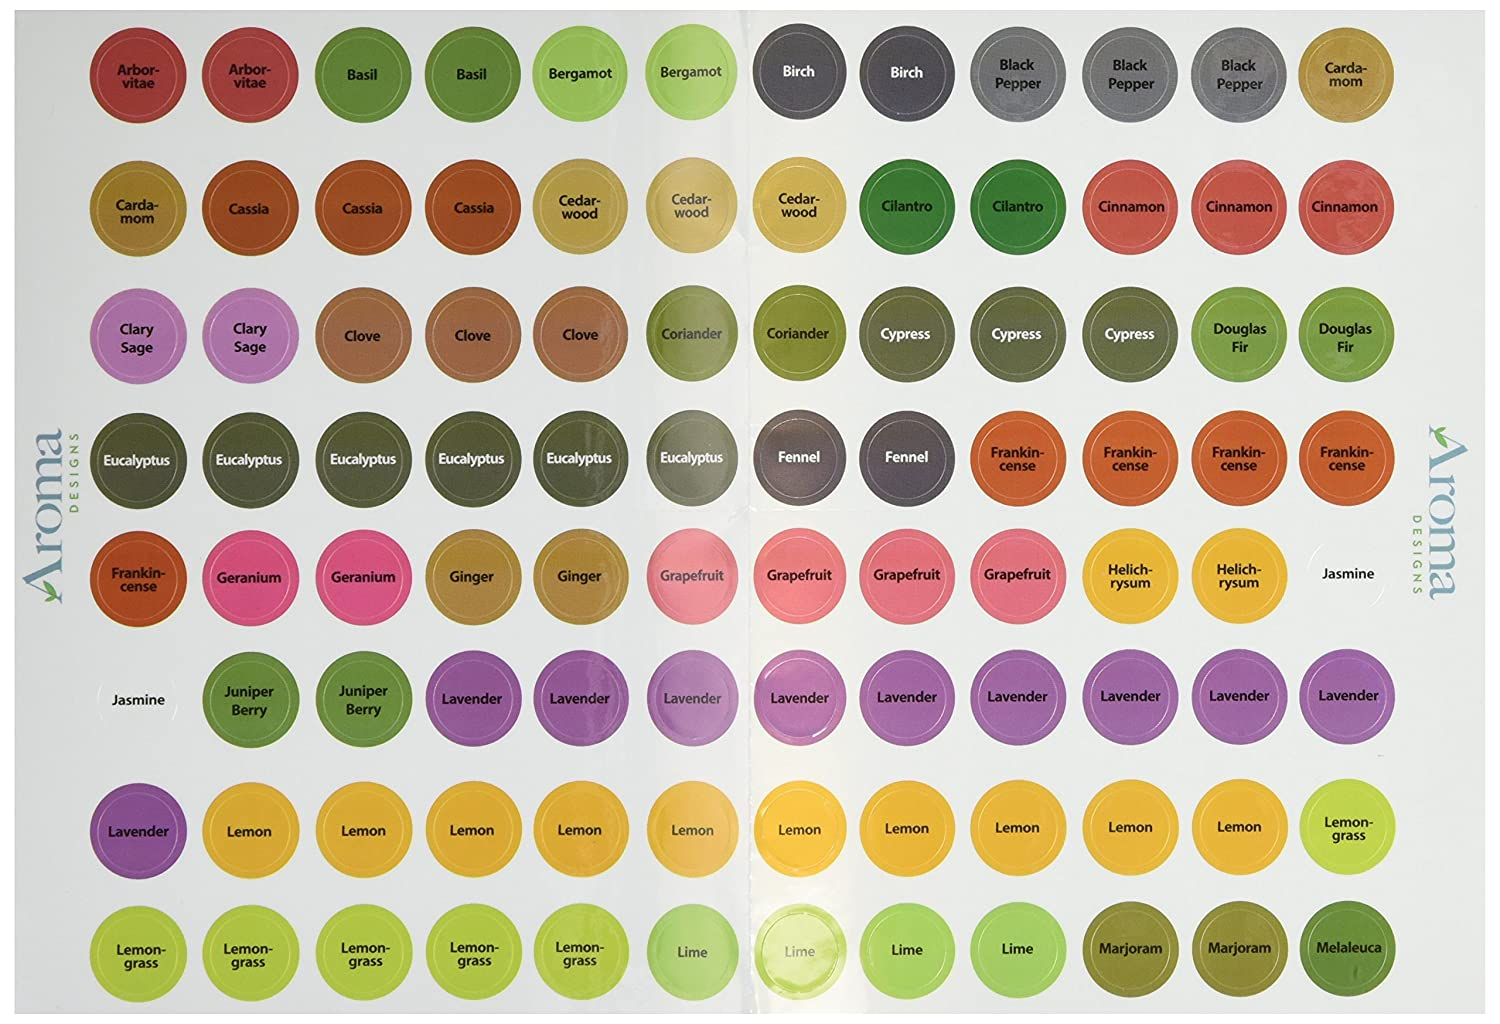 doTERRA Essential Oils Labels - Includes ALL OILS as of Spring 2016 - Includes Multiple doTERRA Bottle Cap Stickers for ALL doTERRA Oils - Perfect Lid Stickers to Keep Your Oils Organized